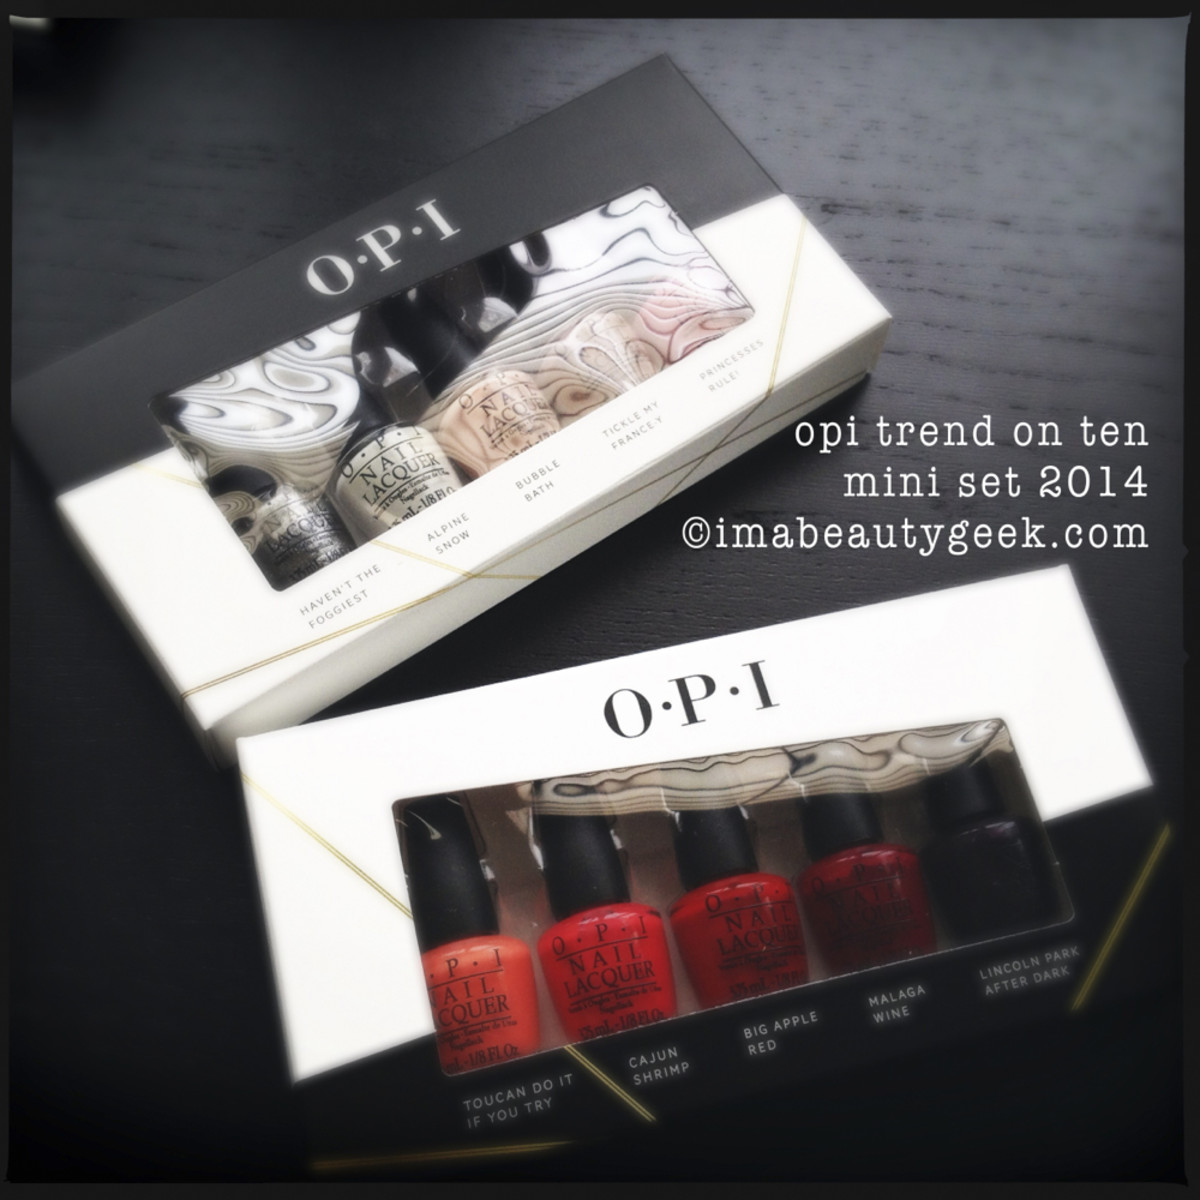 OPI Holiday Gifts 2014 Trend on Ten Split